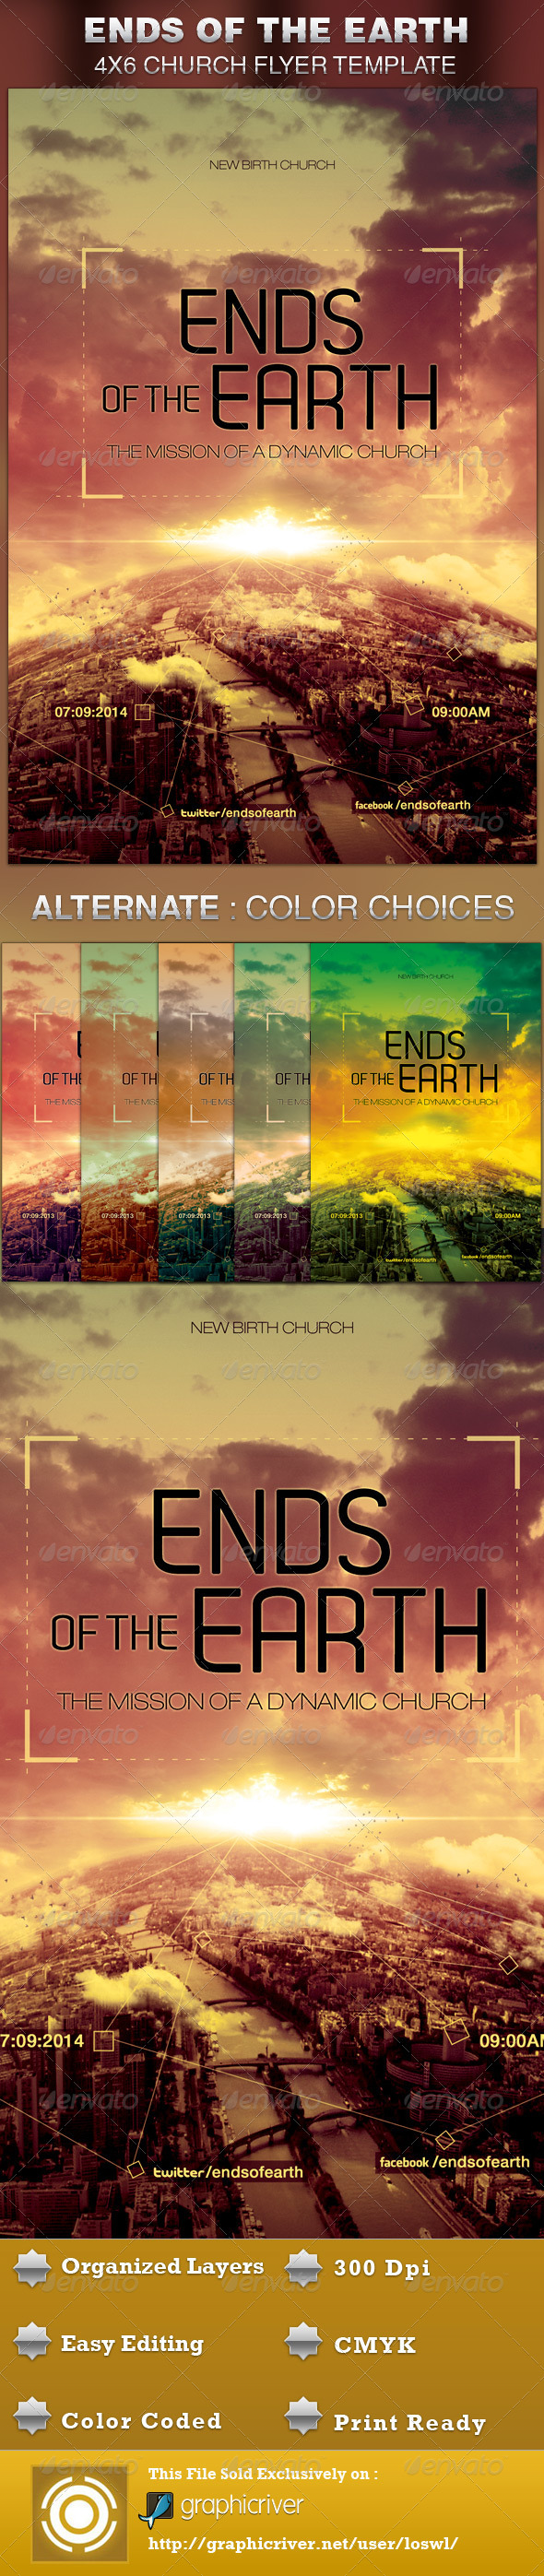 GraphicRiver Ends of the Earth Church Flyer Template 5172863